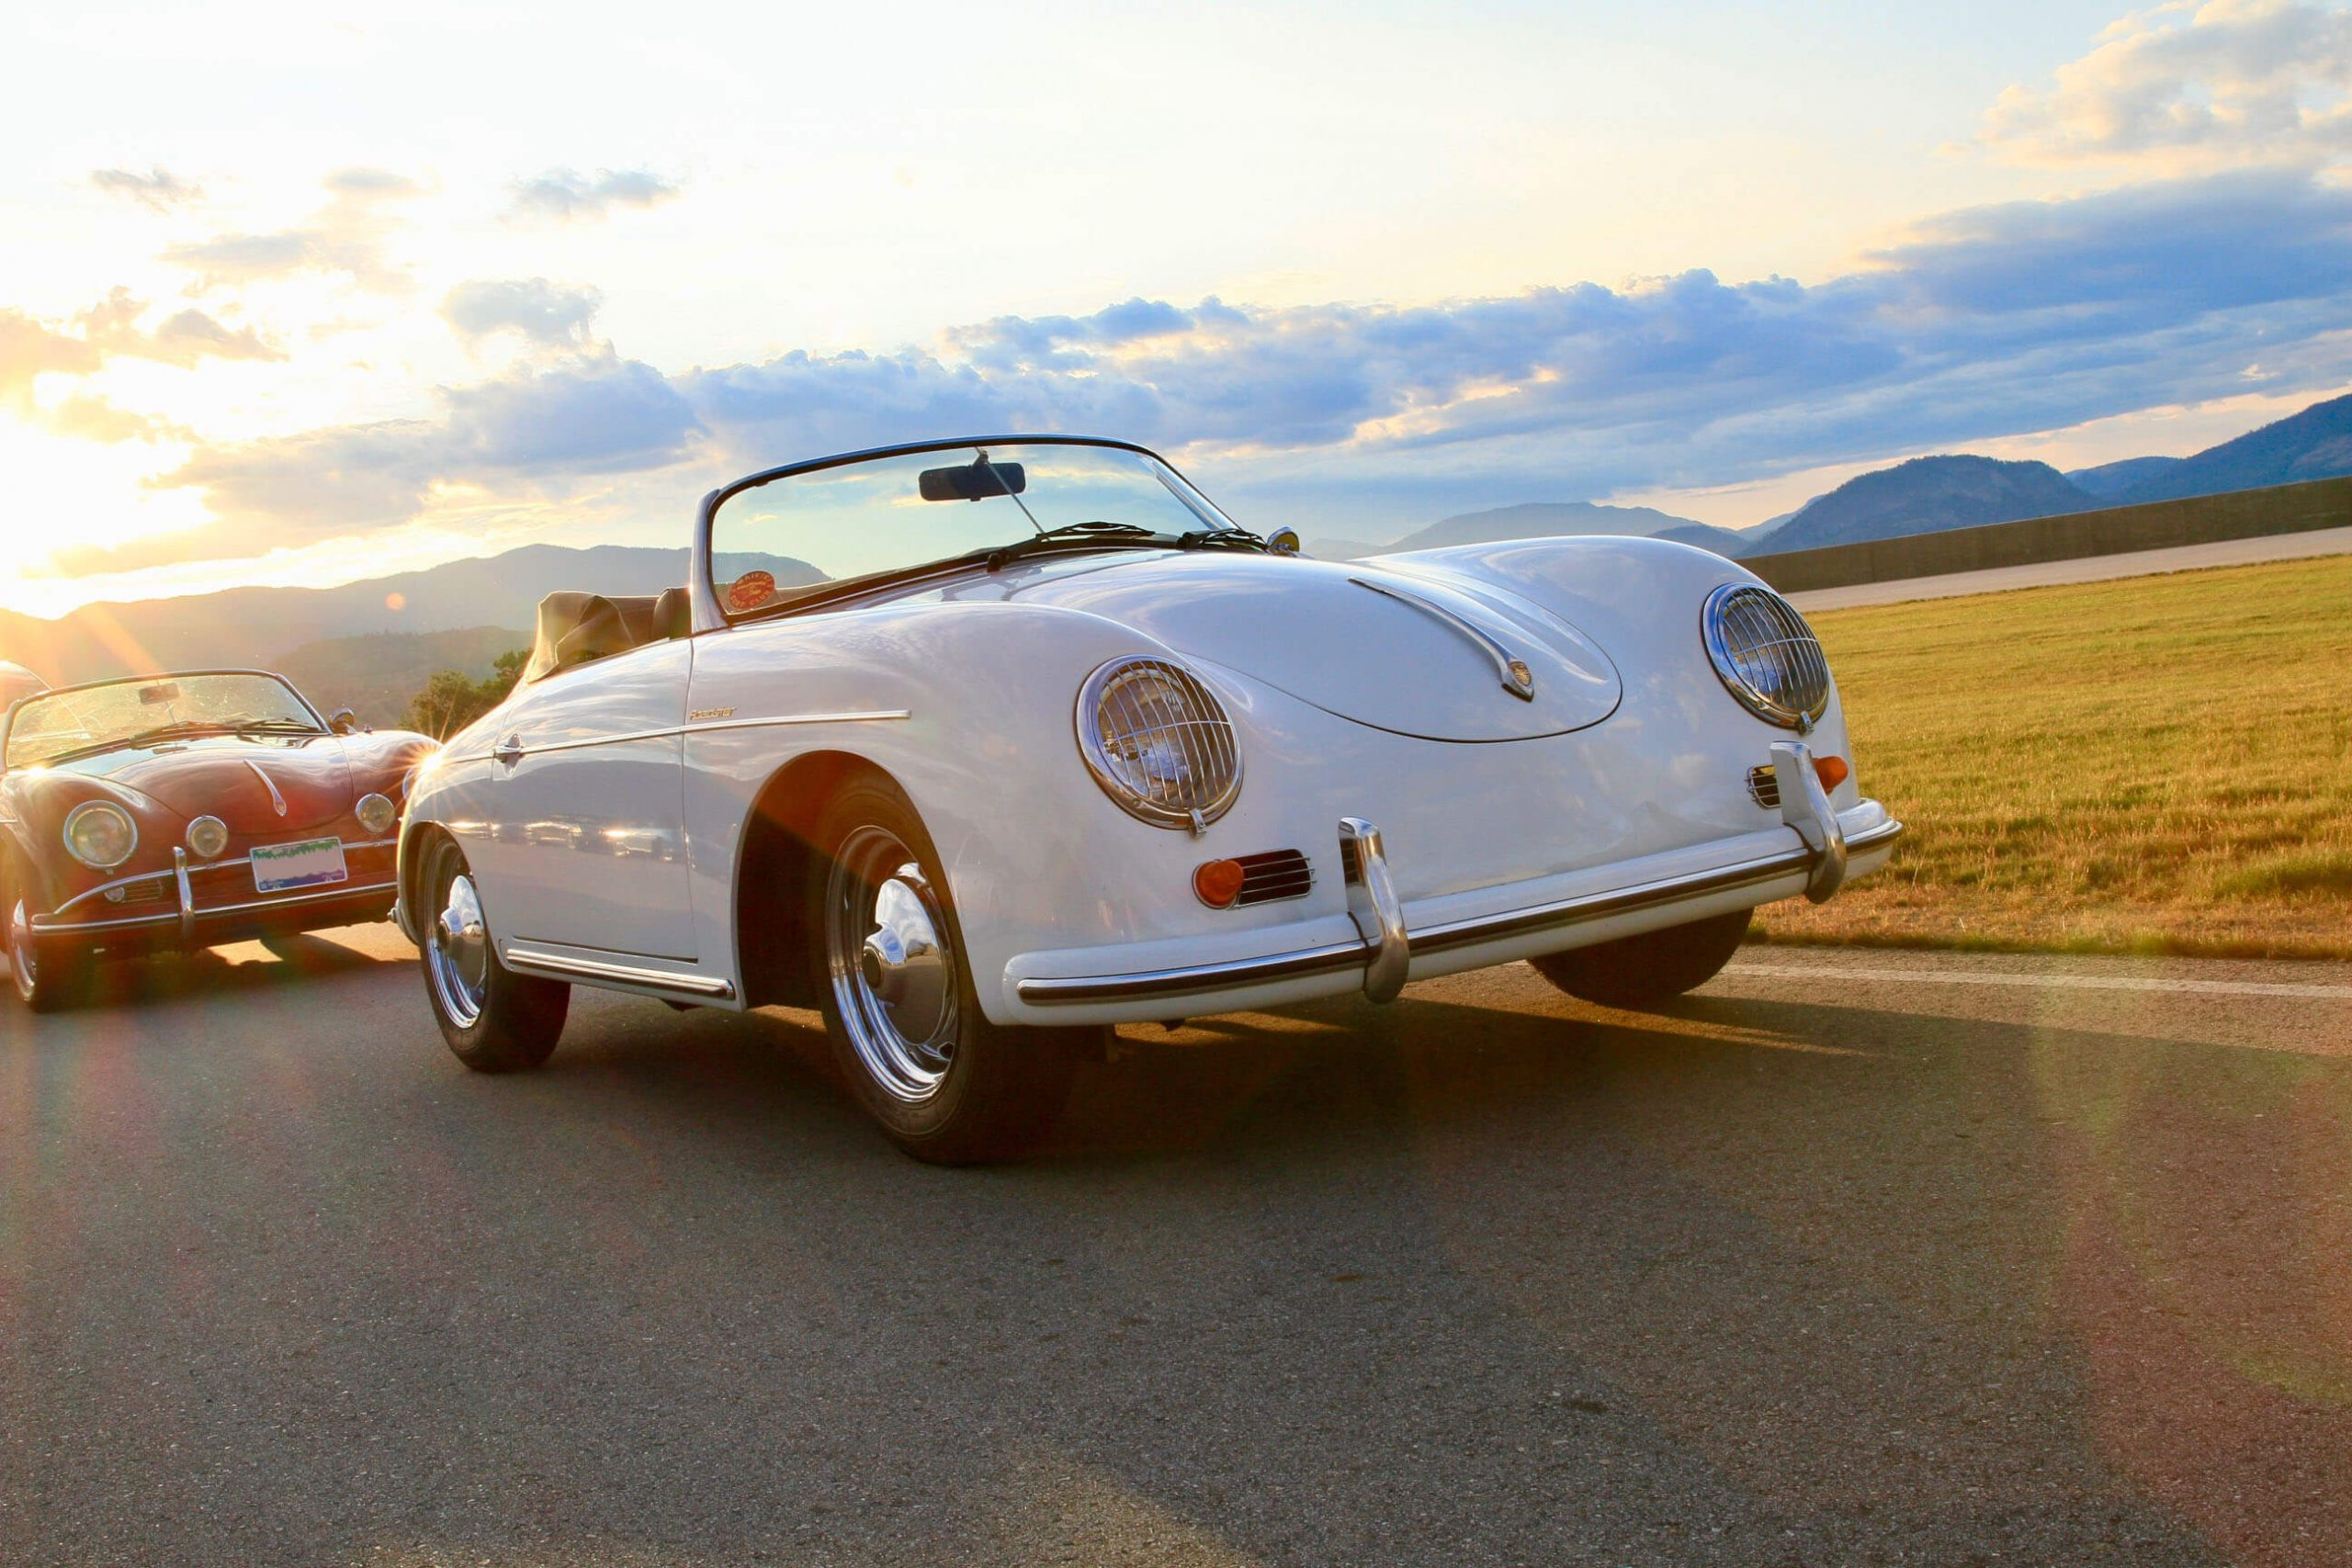 White Intermeccanica Roadster at Sunset, Front View